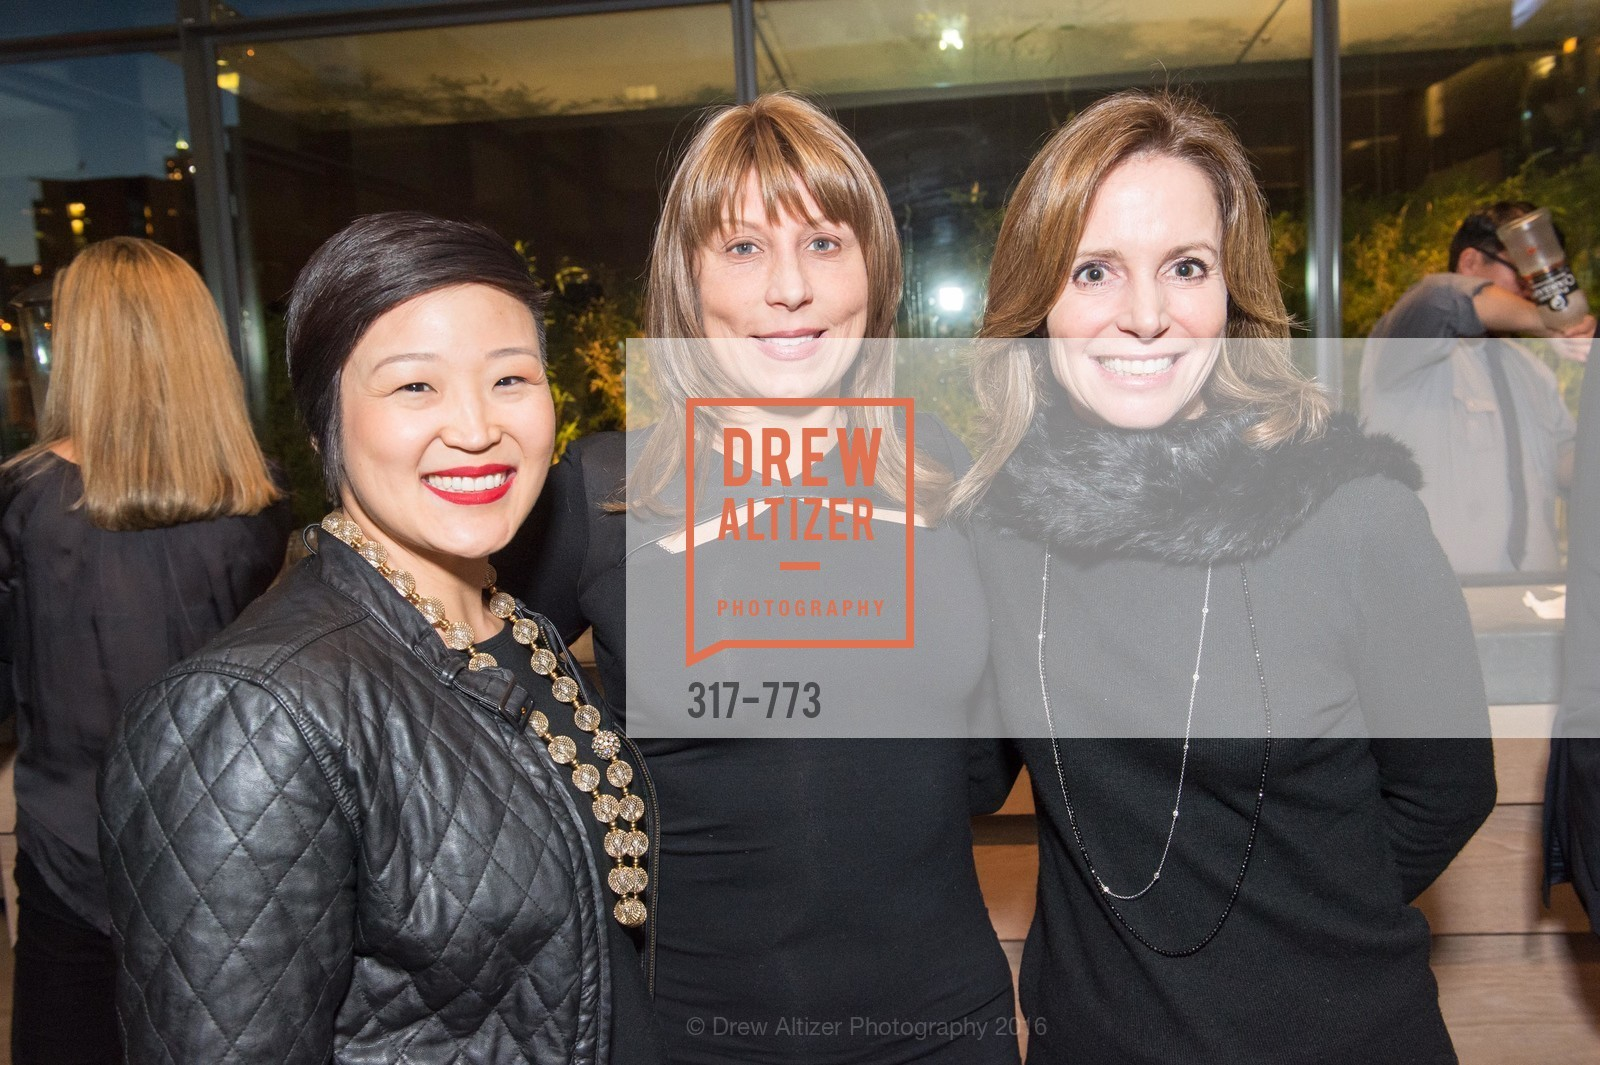 Kelly Kang, Amanda Jones, Carrie Goodman, Sotheby's International Realty's Celebrates the New Year, The Battery, Penthouse. 717 Battery St, January 27th, 2016,Drew Altizer, Drew Altizer Photography, full-service agency, private events, San Francisco photographer, photographer california